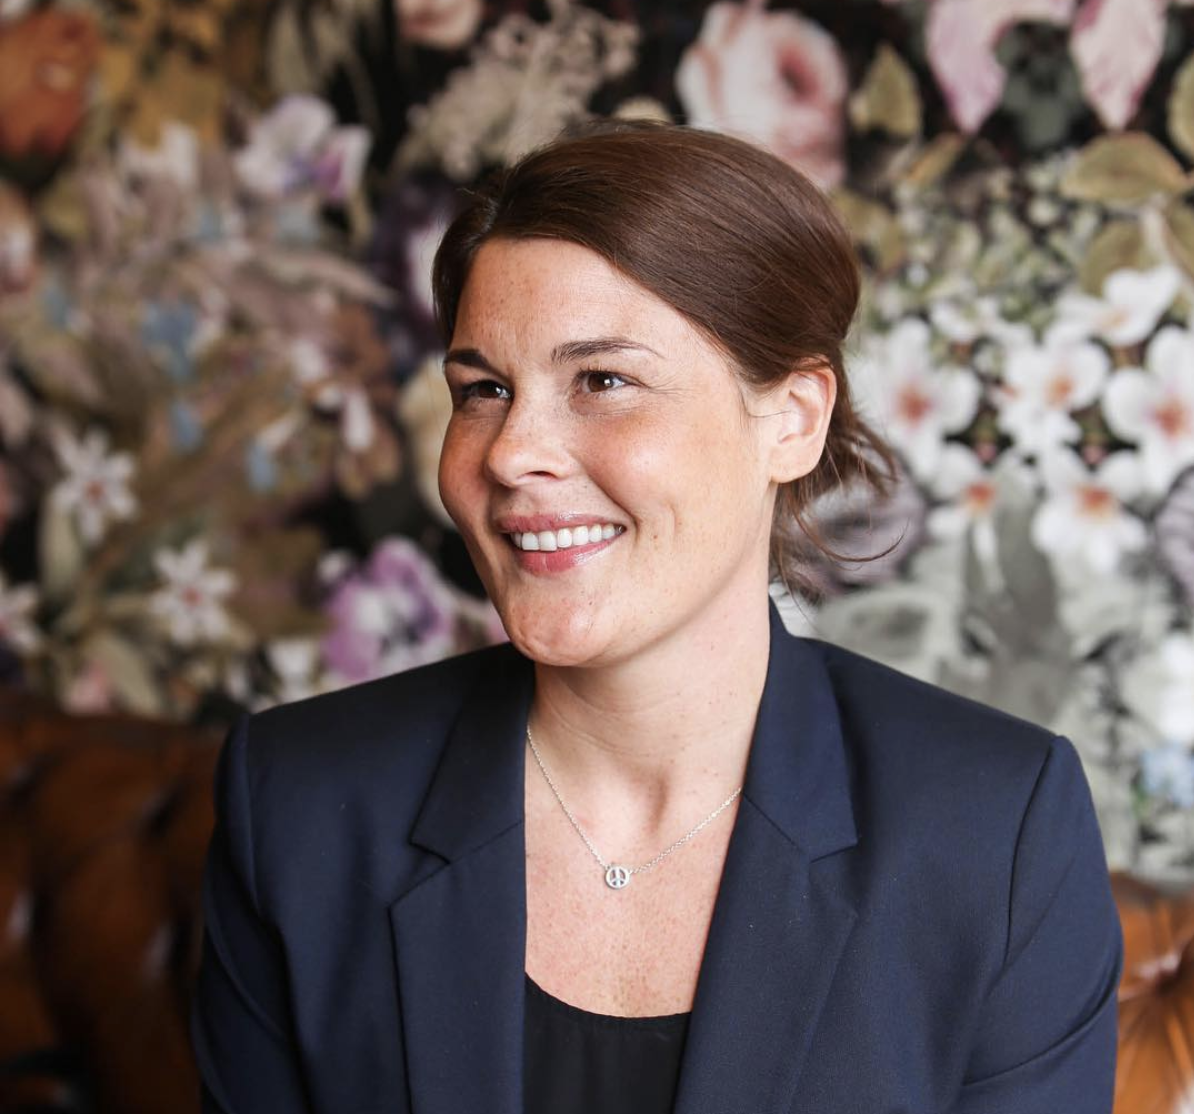 Diana Lidforsen - Diana is the CEO and Founder of FlowCup. She began the business in 2011 and made it her mission to provide women around the world with a sensible solution to managing their periods. The technology of the menstrual cup grabbed her attention because of its many environmental and economical benefits.